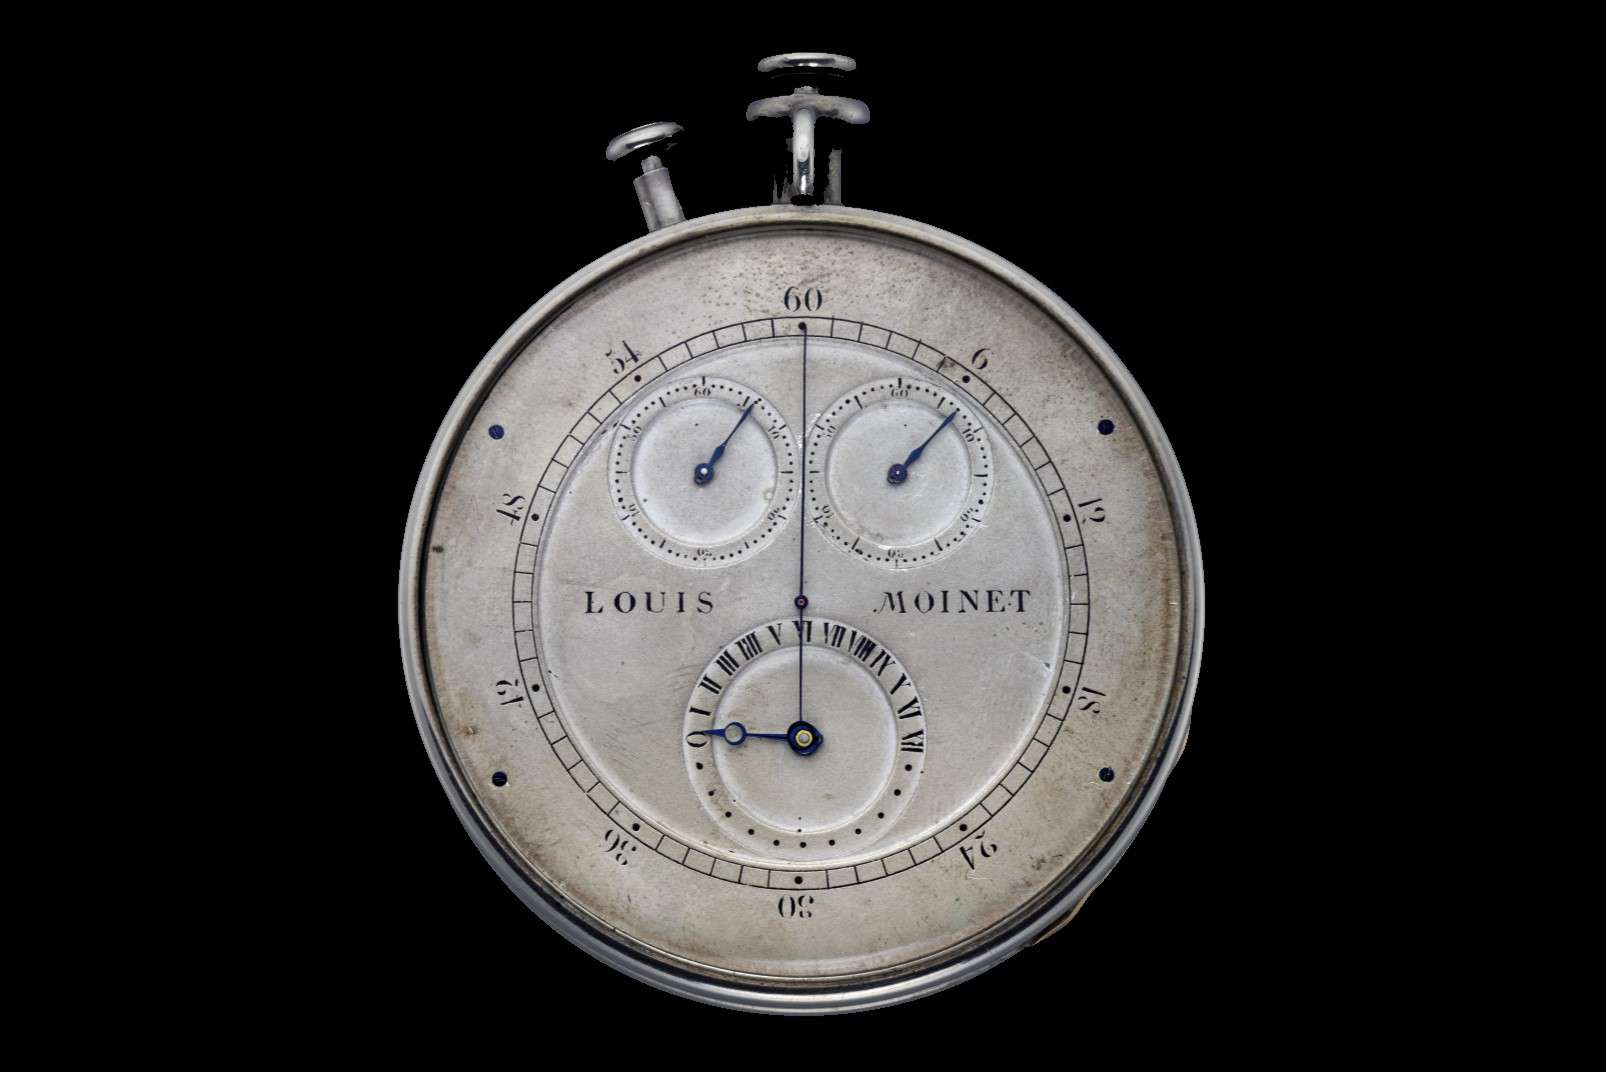 Louis Moinet's Compteur de Tierces, photo courtesy of Louis Moinet CC BY-SA 3.0